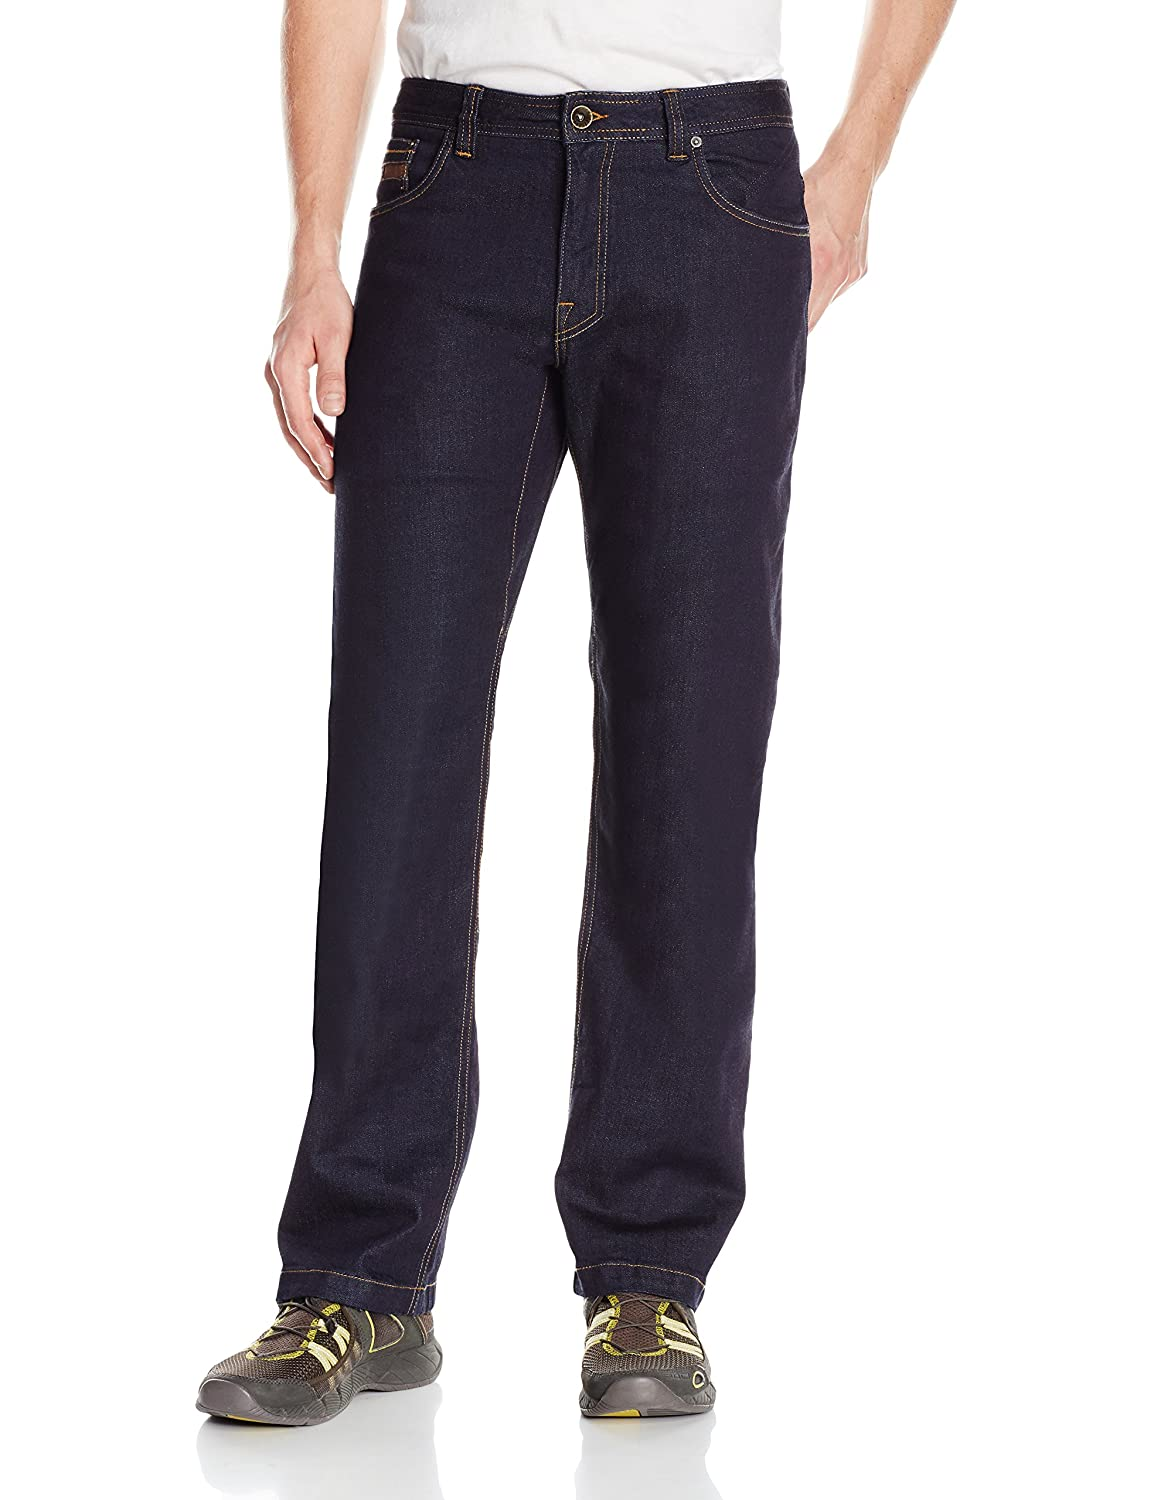 "PrAna Men& 039;s M41173202 Axiom Jean 32"" Inseam, Rinse Wash, Größe 36"